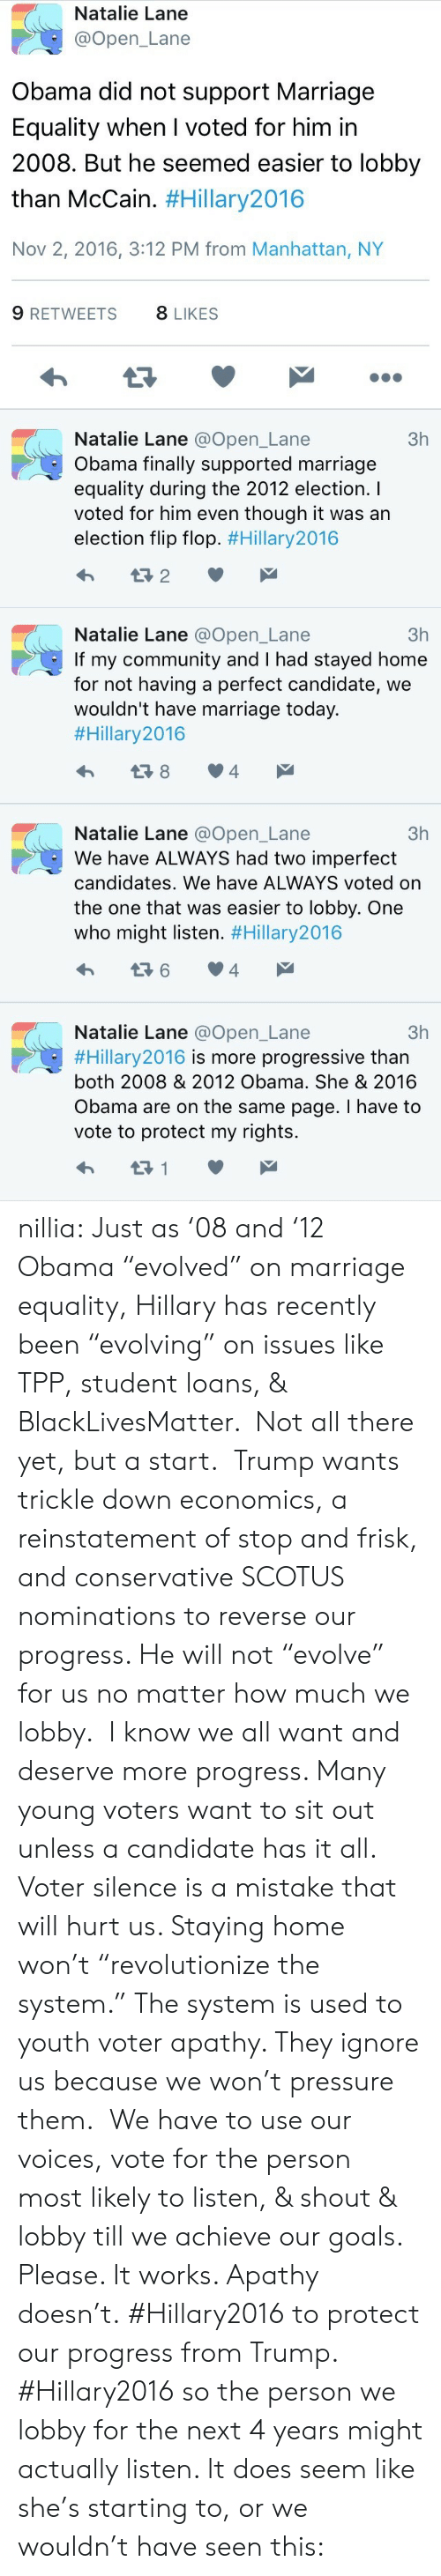 """Hillary2016: Natalie Lane  @Open_Lane  Obama did not support Marriage  Equality when I voted for him in  2008. But he seemed easier to lobby  than McCain. #Hillary2016  Nov 2, 2016, 3:12 PM from Manhattan, NY  9 RETWEETS  8 LIKES  Natalie Lane @Open_Lane  3h  Obama finally supported marriage  equality during the 2012 election. I  voted for him even though it was an  election flip flop. #Hillary2016  t2   Natalie Lane @Open_Lane  If my community and I had stayed home  for not having a perfect candidate, we  wouldn't have marriage today.  #Hillary2016  3h  t 8  4  Natalie Lane @Open_Lane  3h  We have ALWAYS had two imperfect  candidates. We have ALWAYS voted on  the one that was easier to lobby. One  who might listen. #Hillary2016  4  Natalie Lane @Open_Lane  3h  #Hillary 2016 is more progressive than  both 2008 & 2012 Obama. She & 2016  Obama are on the same page. I have to  vote to protect my rights.  t1 nillia:  Just as '08 and '12 Obama """"evolved"""" on marriage equality, Hillary has recently been """"evolving"""" on issues like TPP, student loans, & BlackLivesMatter. Not all there yet, but a start.  Trump wants trickle down economics, a reinstatement of stop and frisk, and conservative SCOTUS nominations to reverse our progress. He will not """"evolve"""" for us no matter how much we lobby. I know we all want and deserve more progress. Many young voters want to sit out unless a candidate has it all. Voter silence is a mistake that will hurt us. Staying home won't """"revolutionize the system."""" The system is used to youth voter apathy. They ignore us because we won't pressure them. We have to use our voices, vote for the person most likely to listen, & shout & lobby till we achieve our goals. Please. It works. Apathy doesn't.  #Hillary2016 to protect our progress from Trump. #Hillary2016 so the person we lobby for the next 4 years might actually listen. It does seem like she's starting to, or we wouldn't have seen this:"""